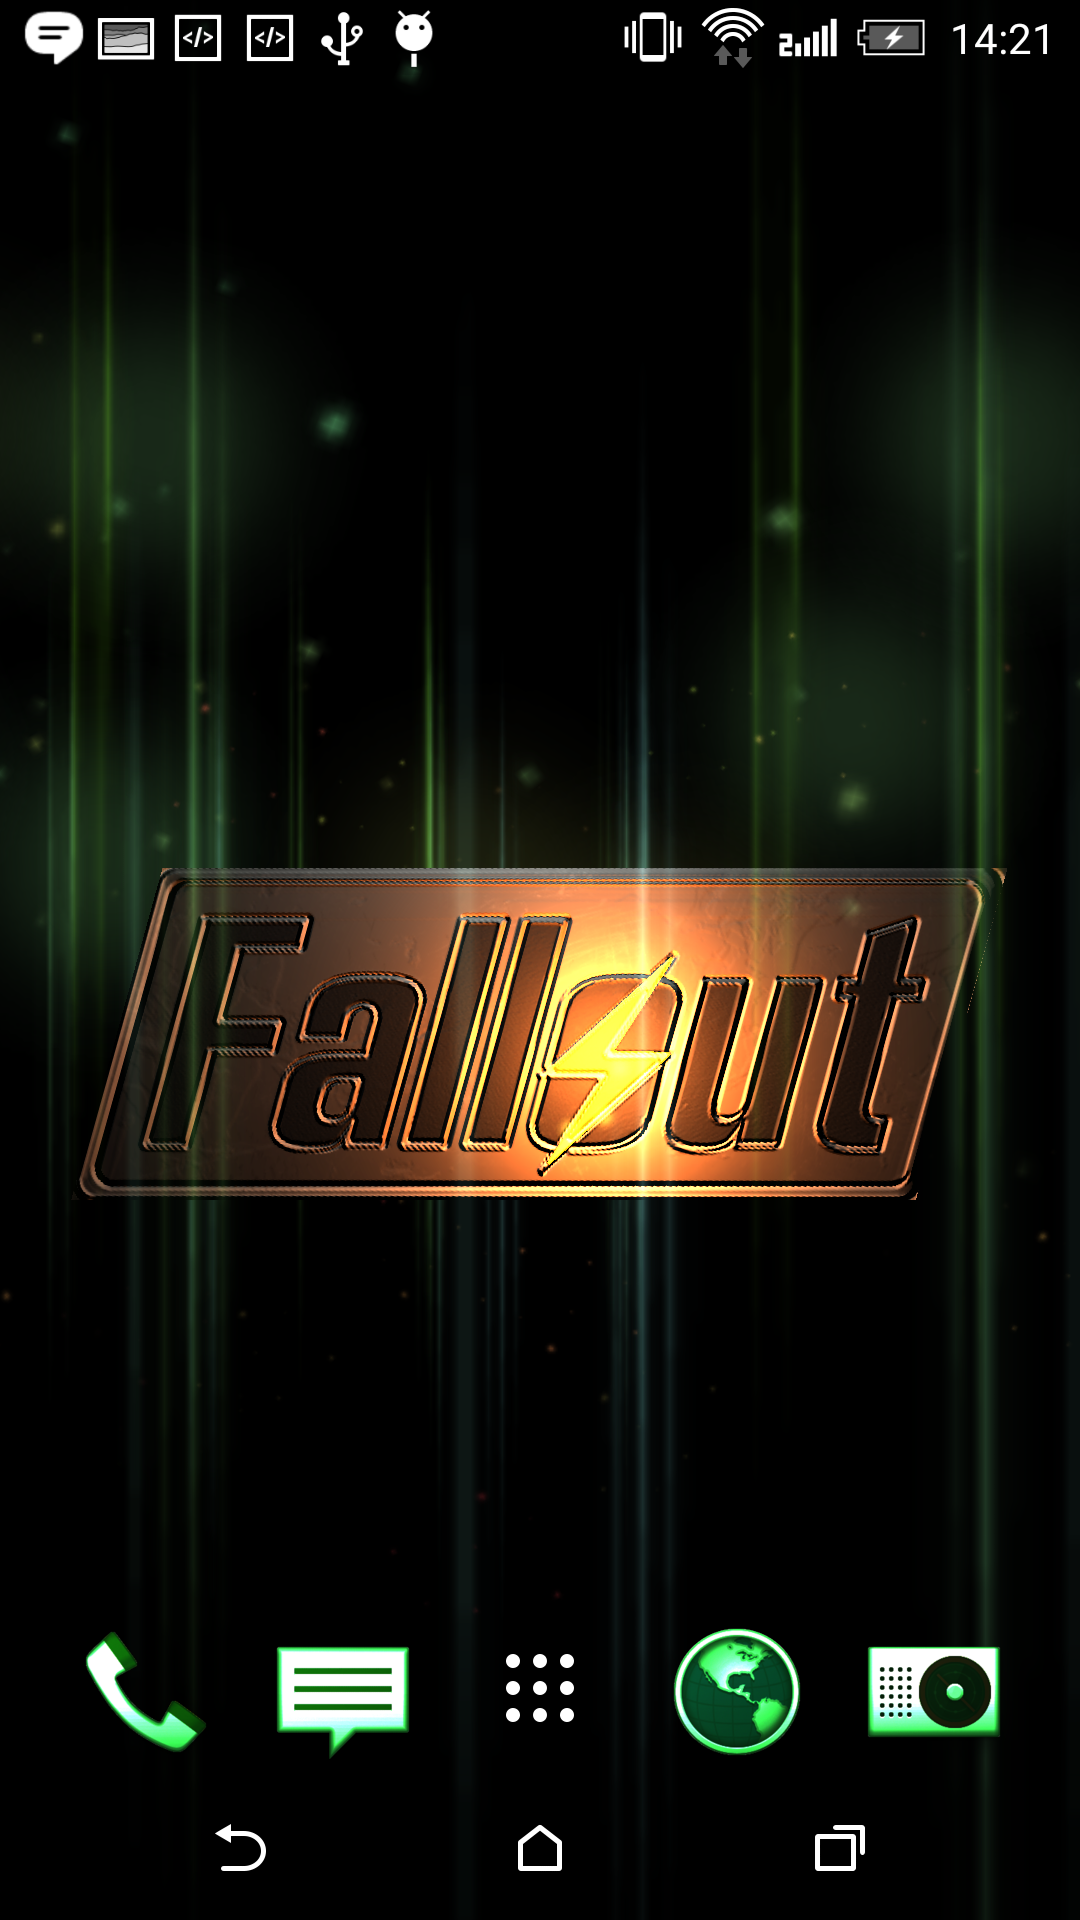 Download Fallout 4 APK free for Android APk SD Data - Androidfunz